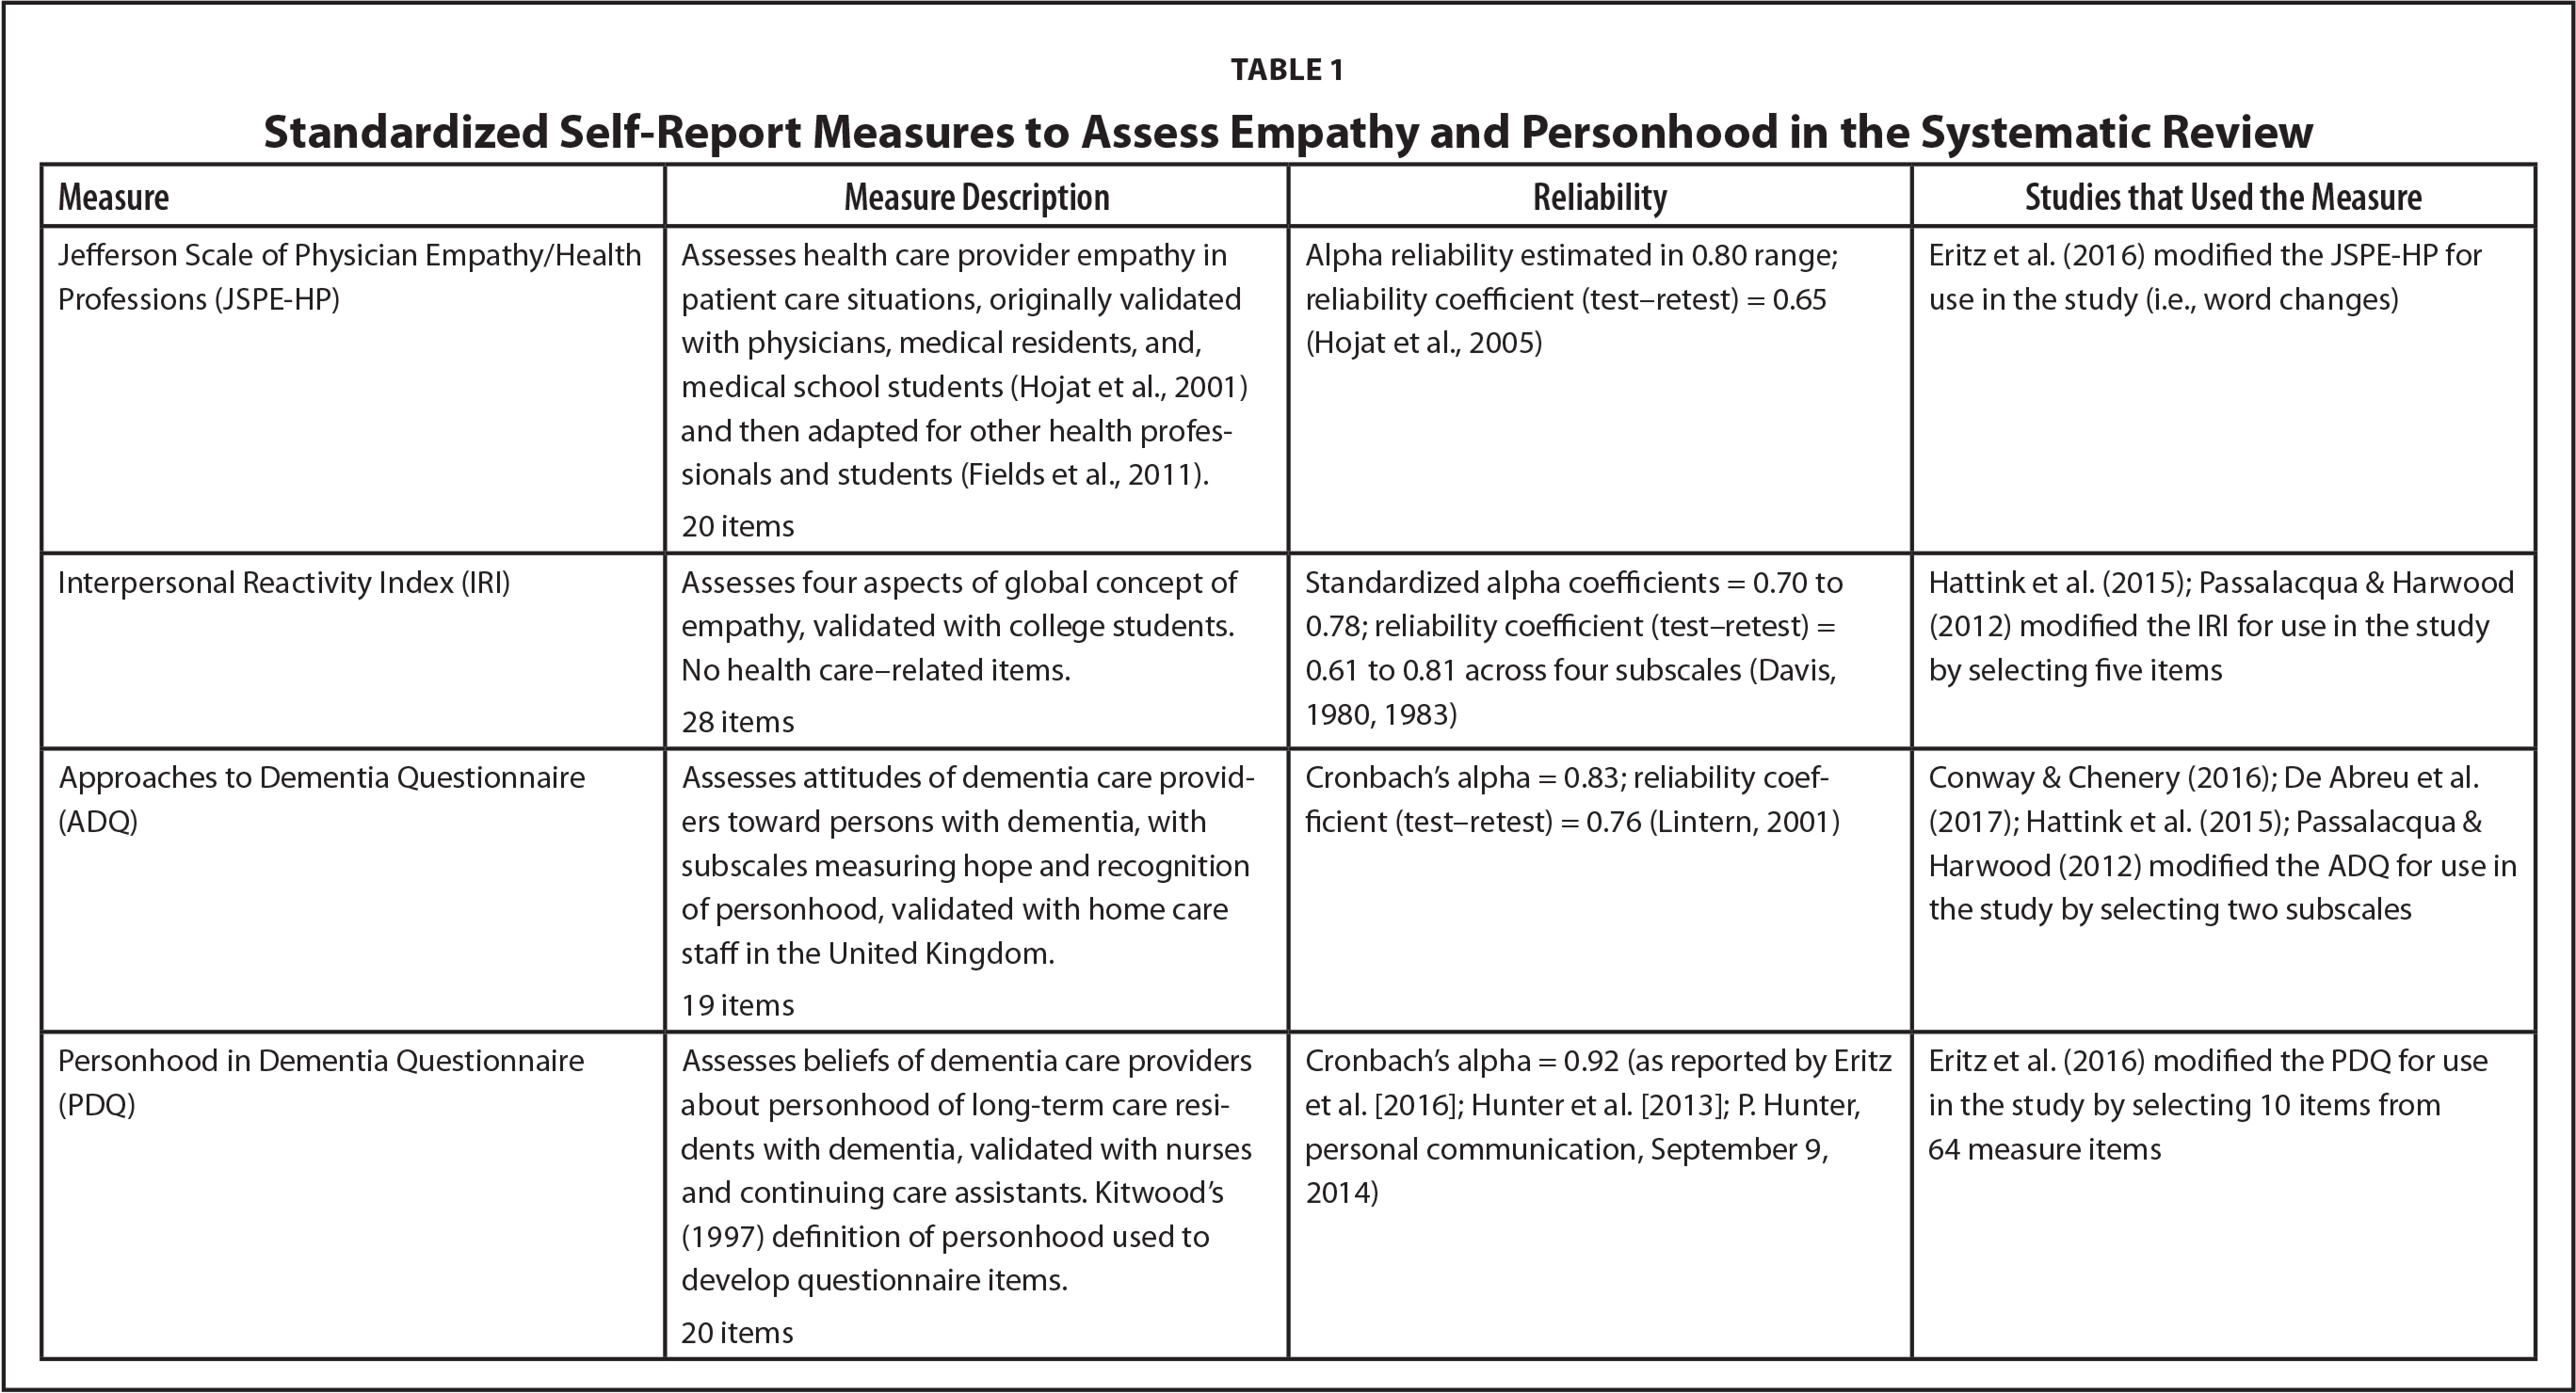 Standardized Self-Report Measures to Assess Empathy and Personhood in the Systematic Review